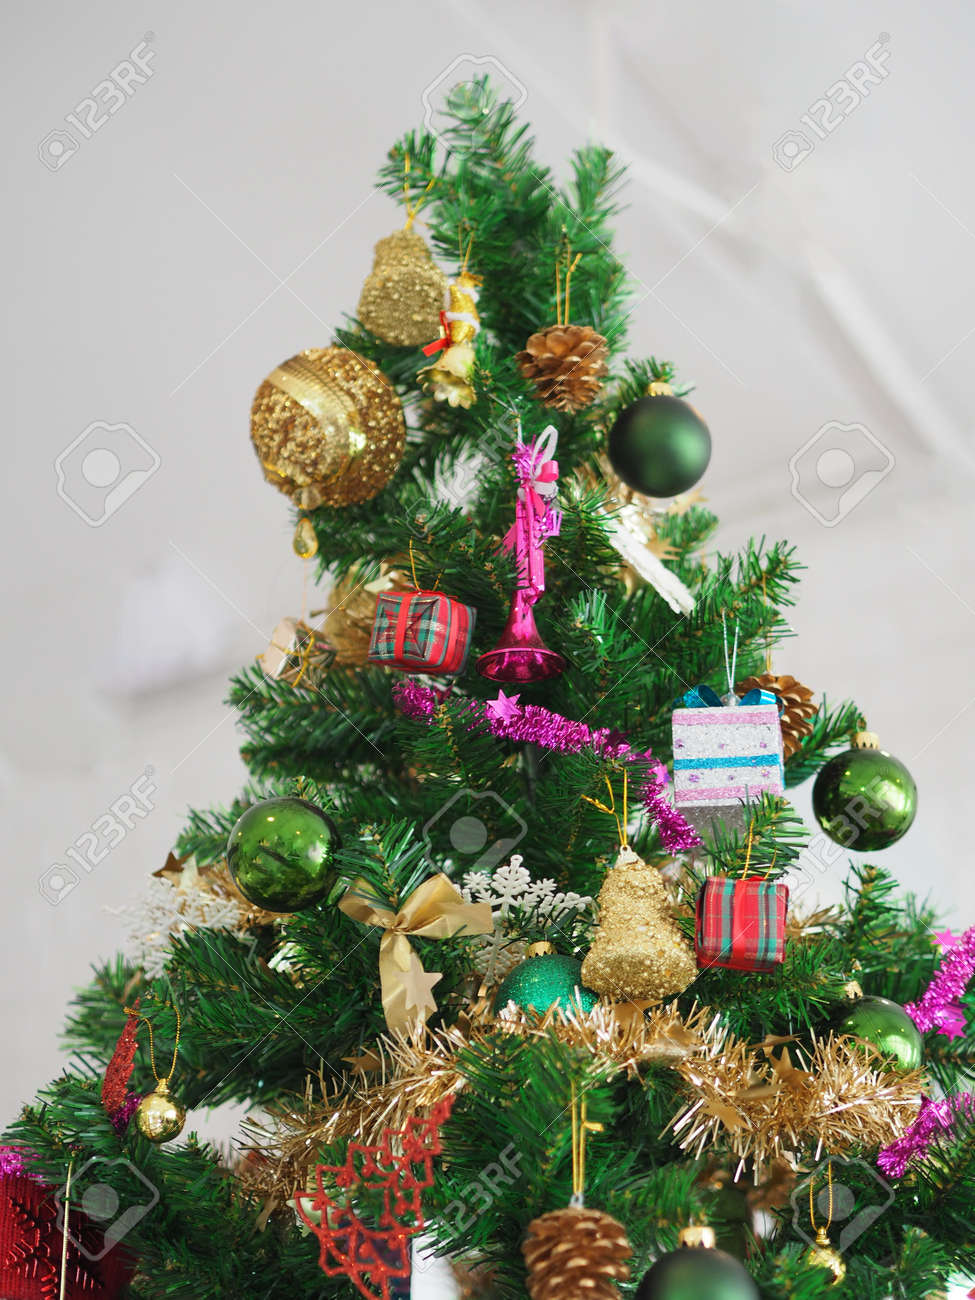 Christmas Decorations Green Tree Hanging Gold Gift Box Green Stock Photo Picture And Royalty Free Image Image 160983589